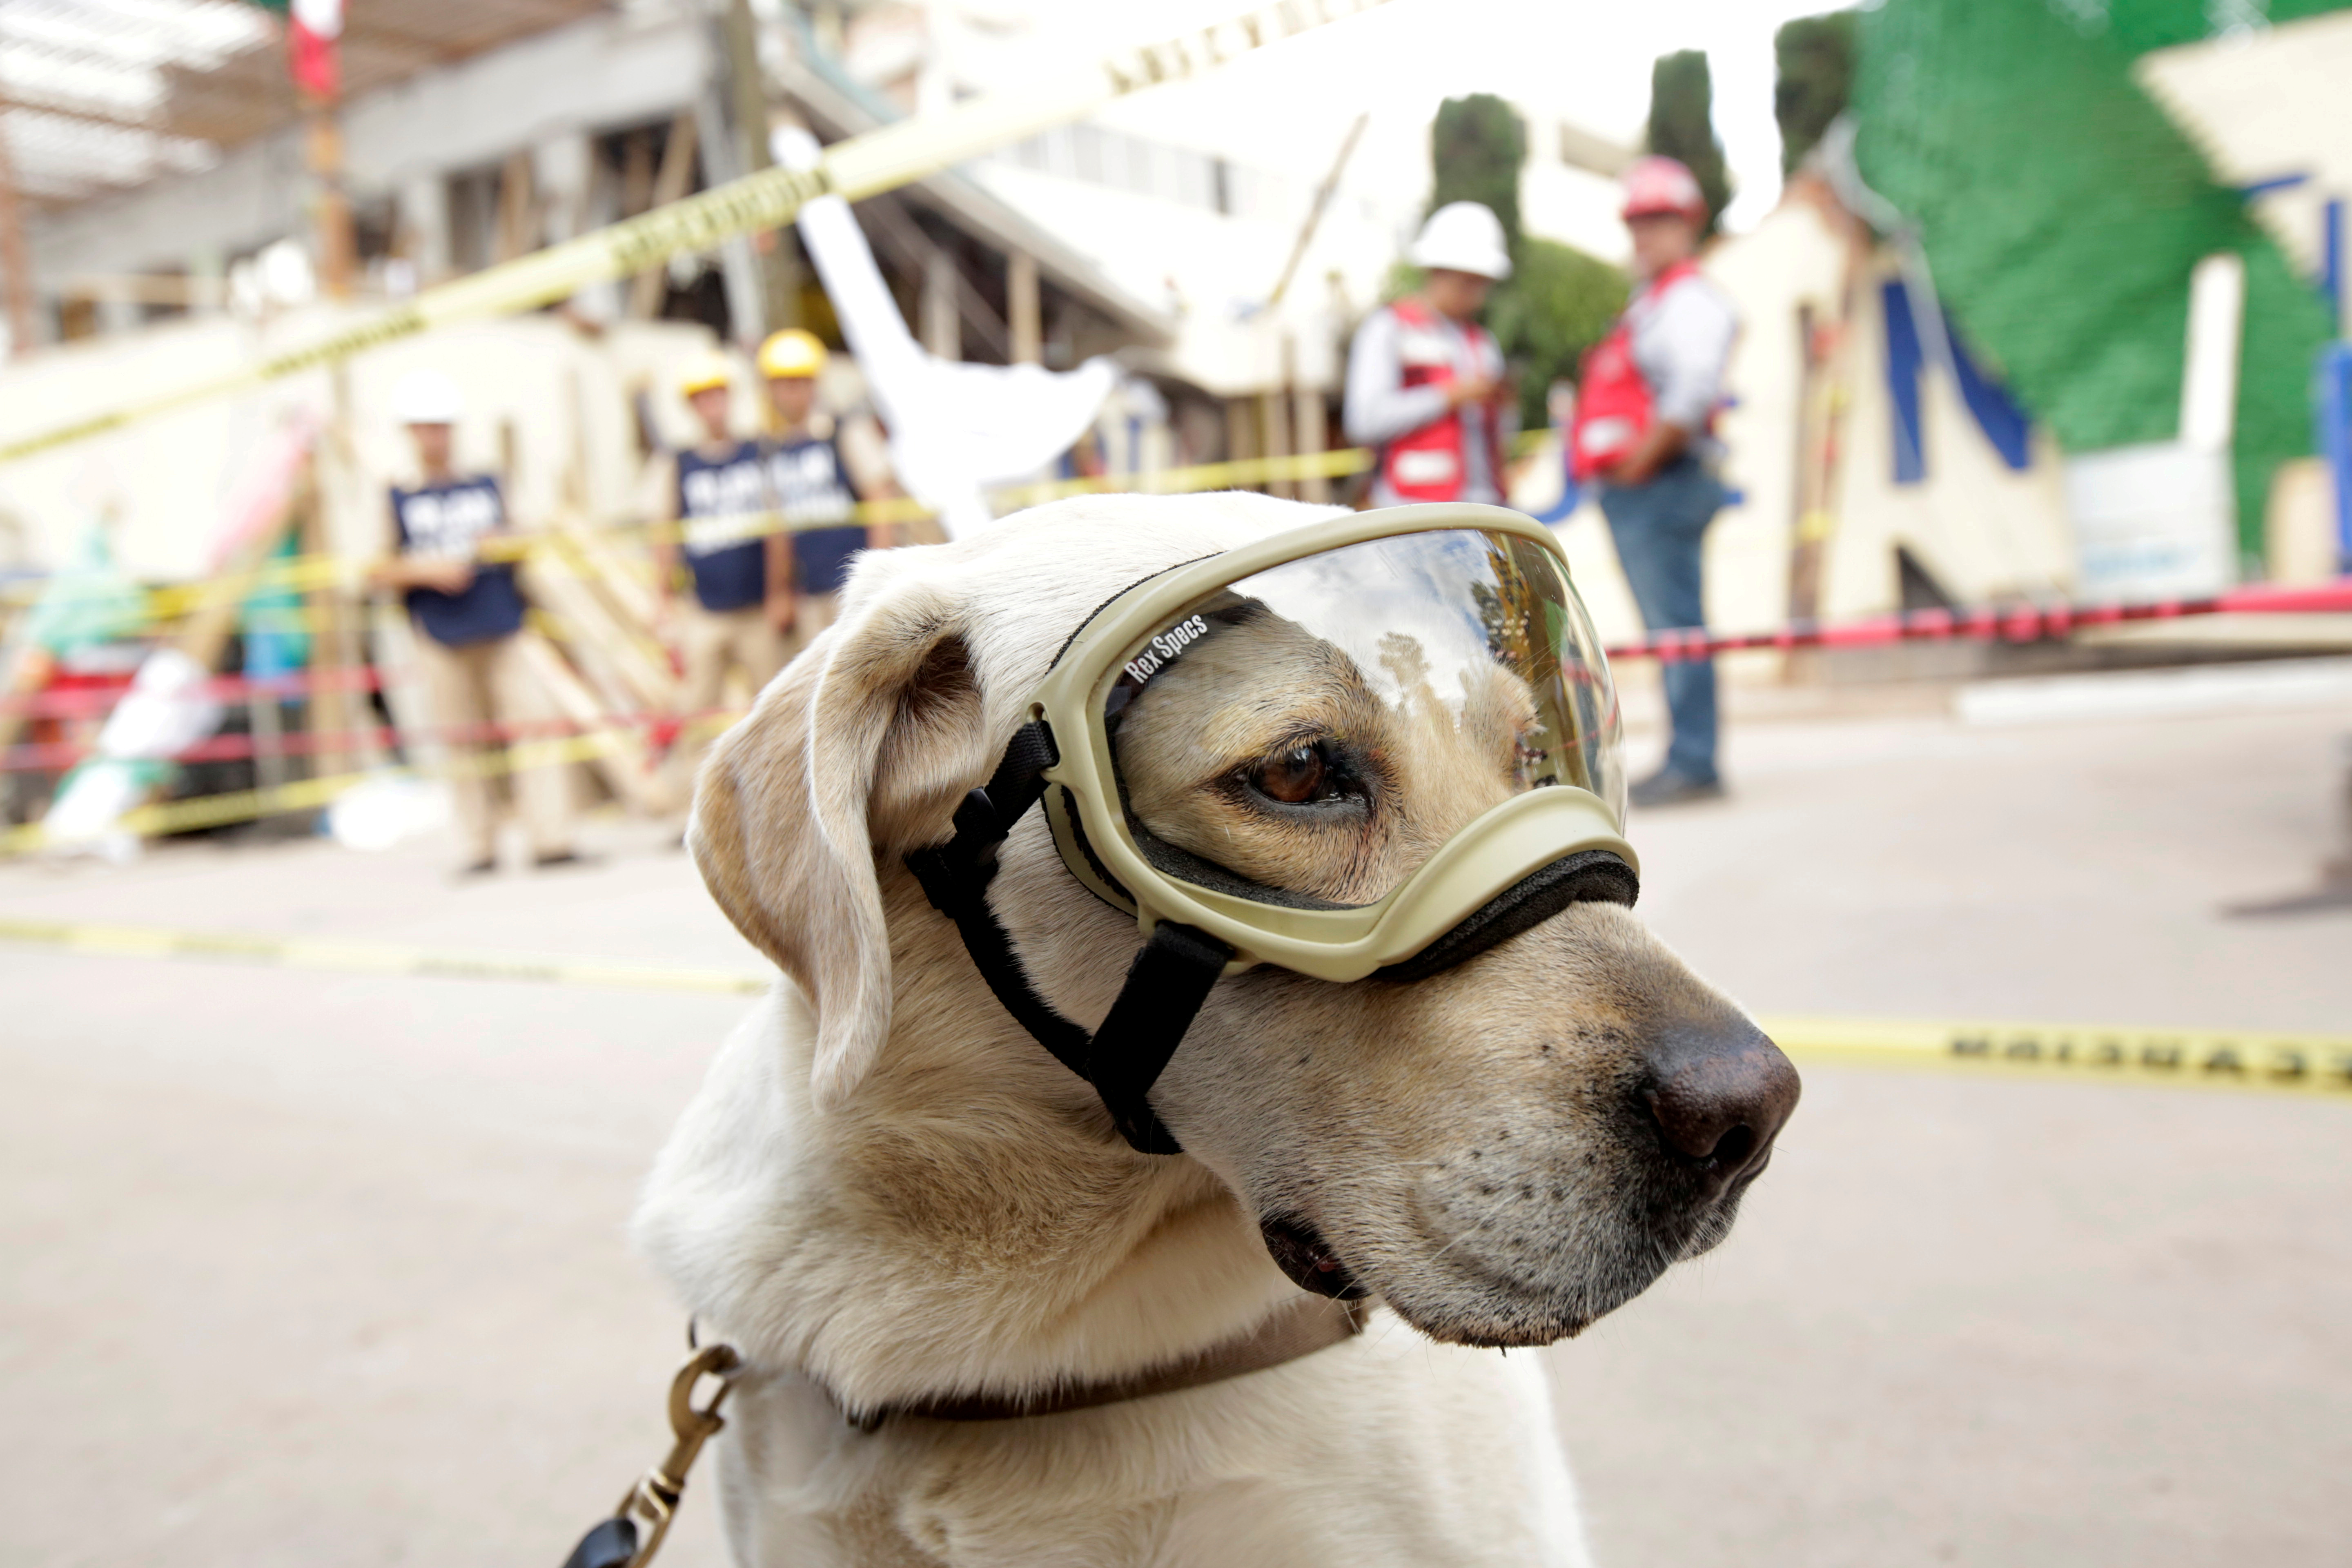 Rescue dog Frida looks on while working after an earthquake in Mexico City, Mexico September 22, 2017. REUTERS/Jose Luis Gonzalez